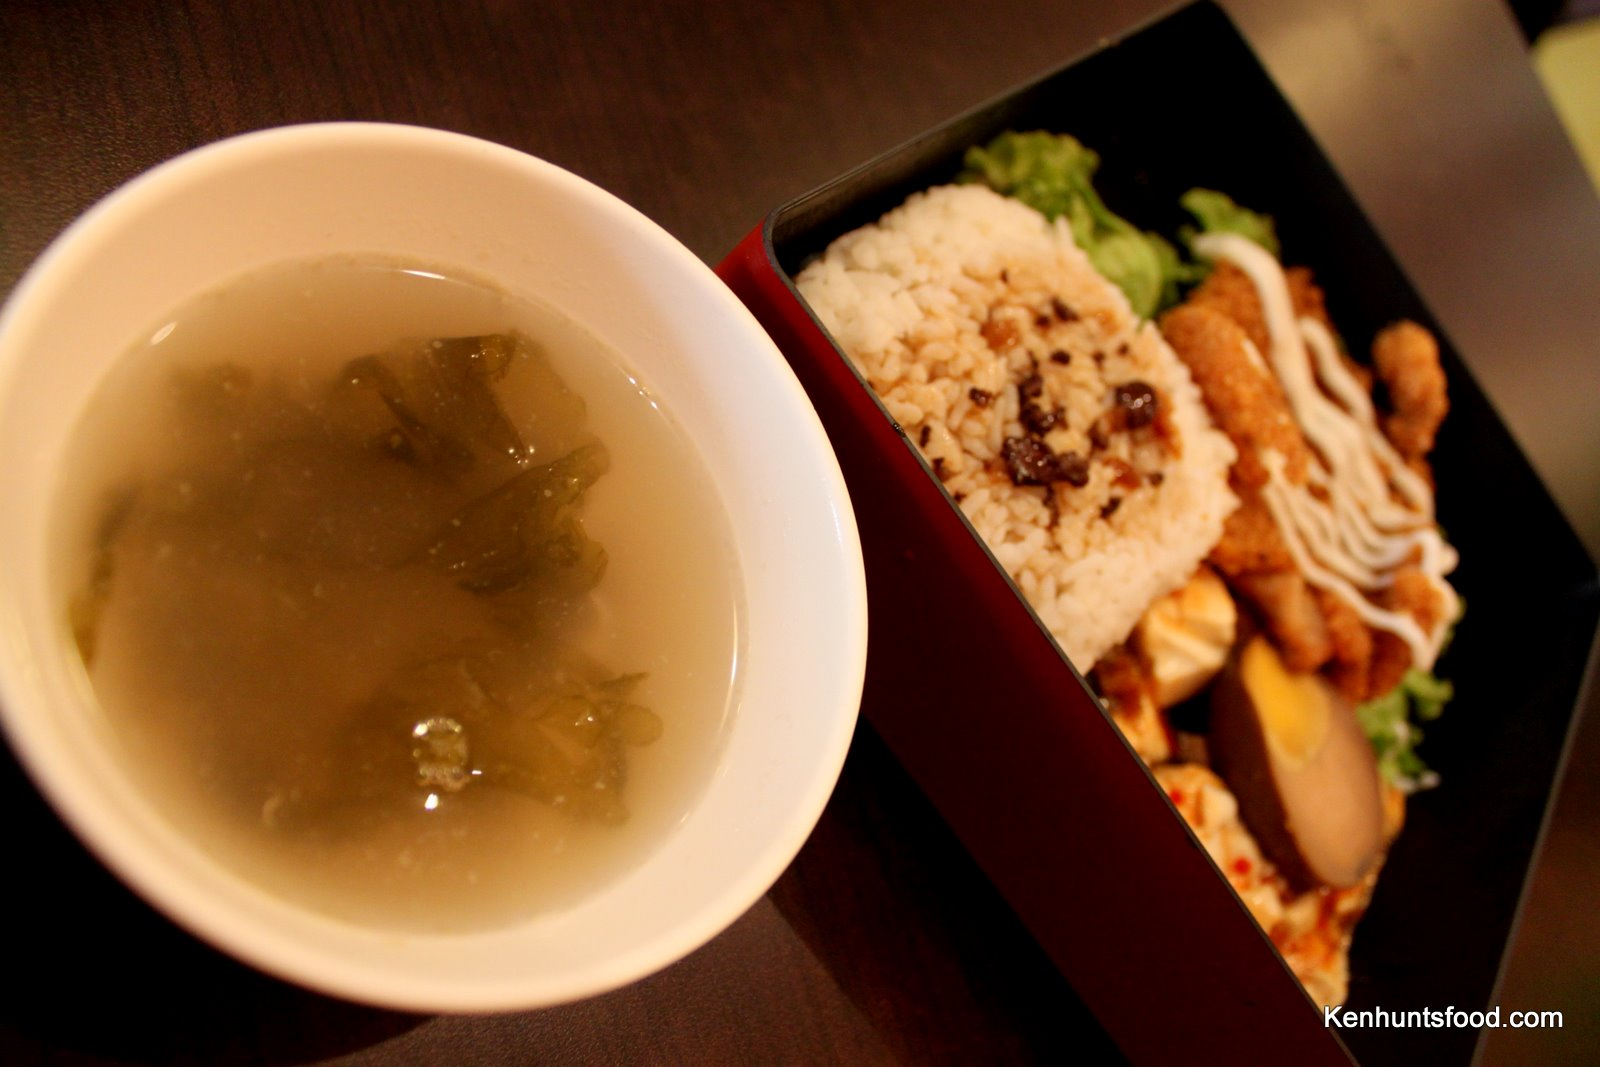 Ken hunts food taipei 101 taiwanese cuisine 101 for 101 soup cuisine